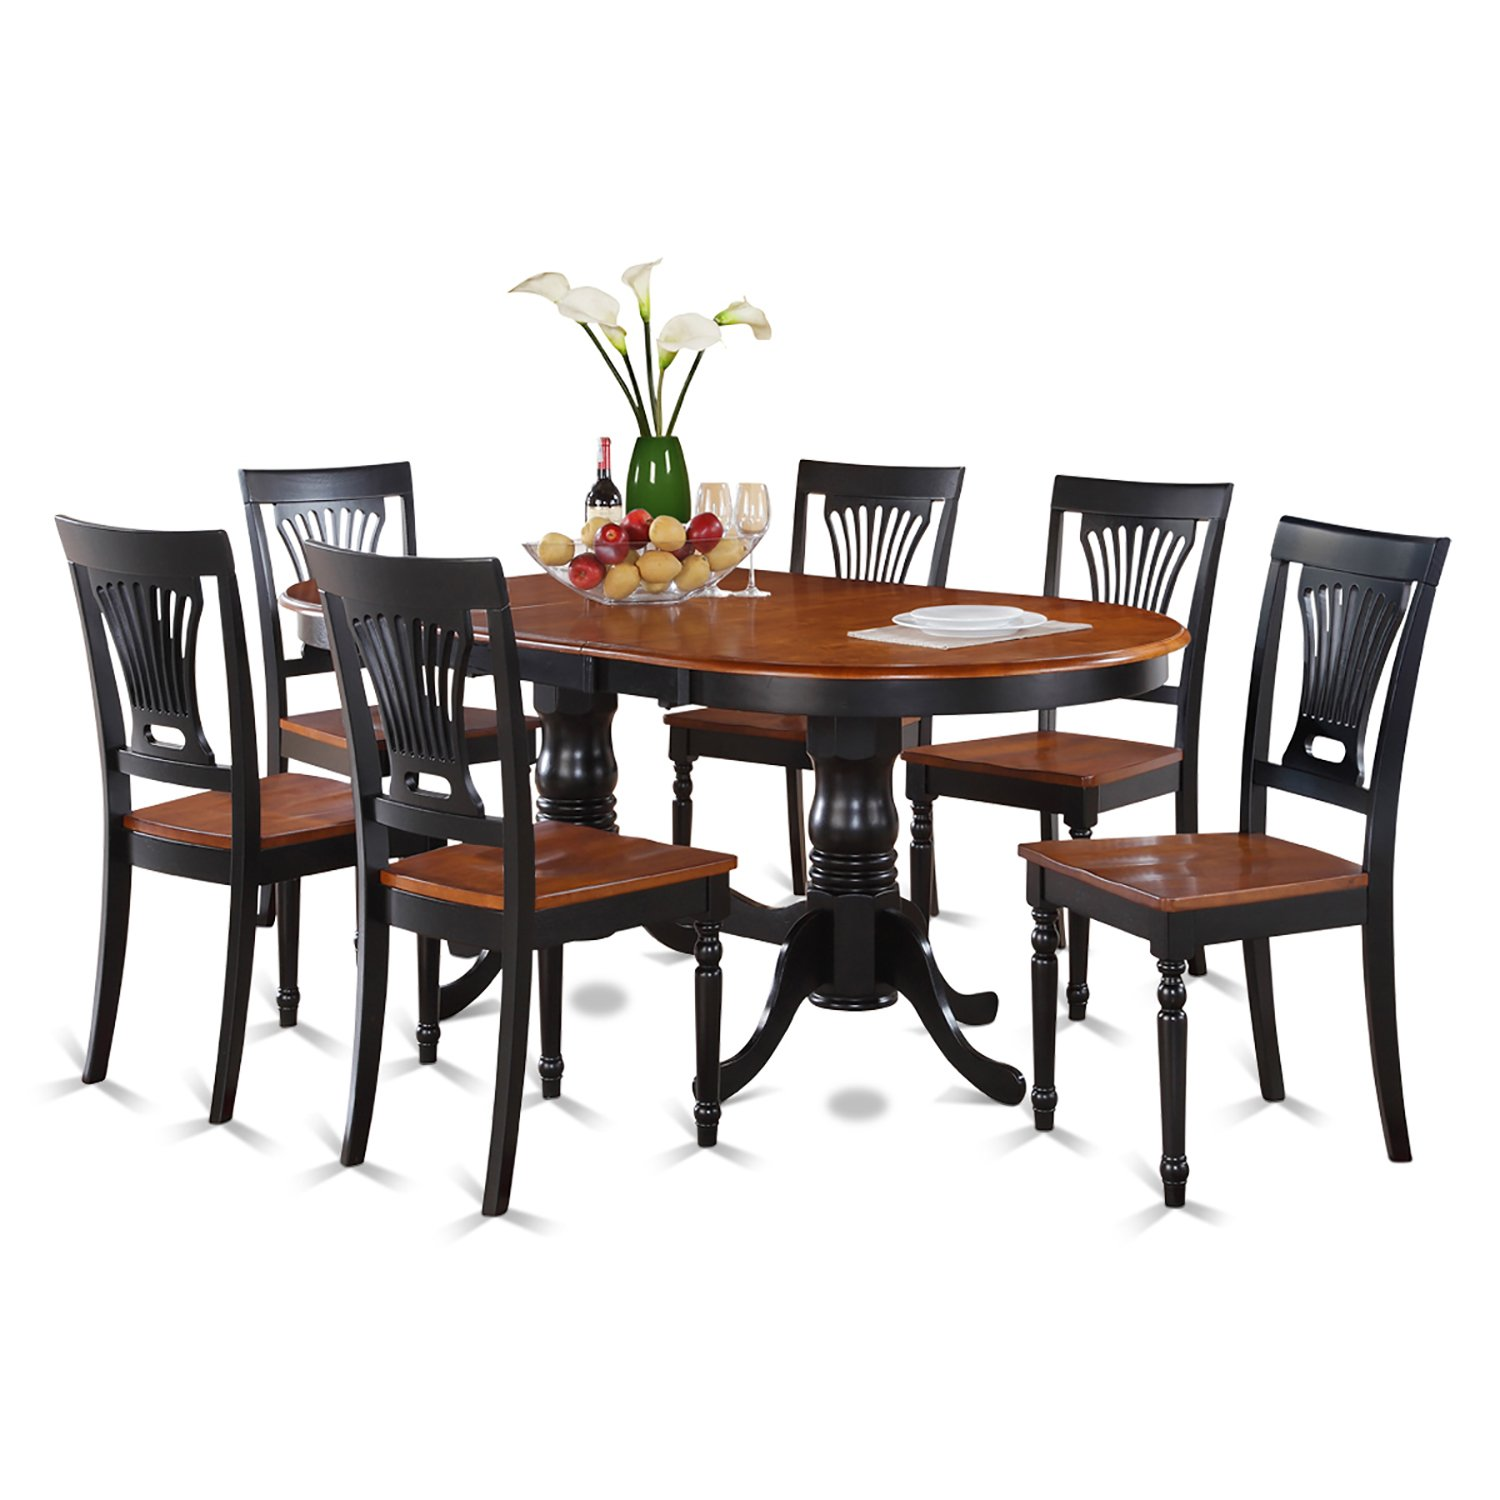 Amazon.com: East West Furniture PLAI7 BLK W 7 Piece Dining Table Set:  Kitchen U0026 Dining